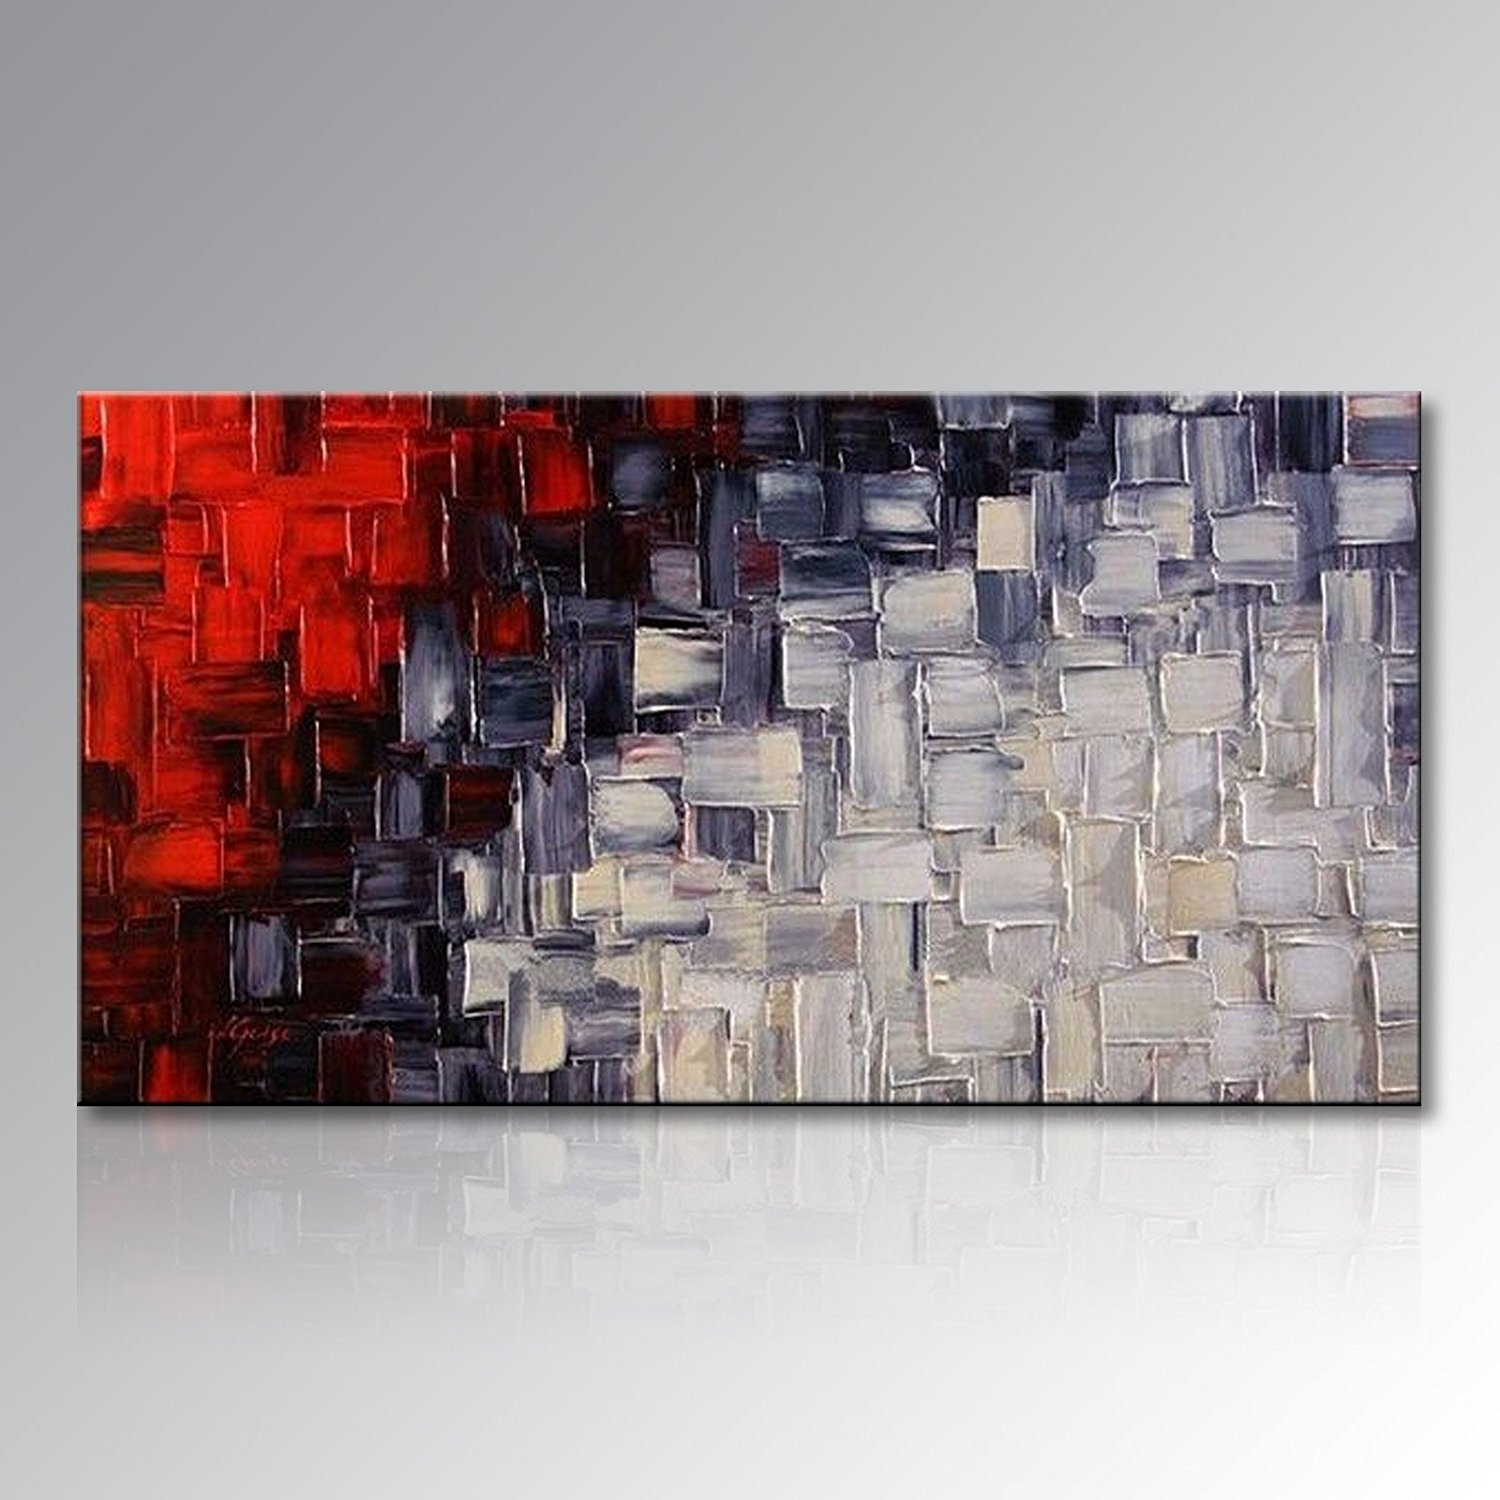 Red Canvas Art: Amazon with regard to Red Canvas Wall Art (Image 17 of 20)